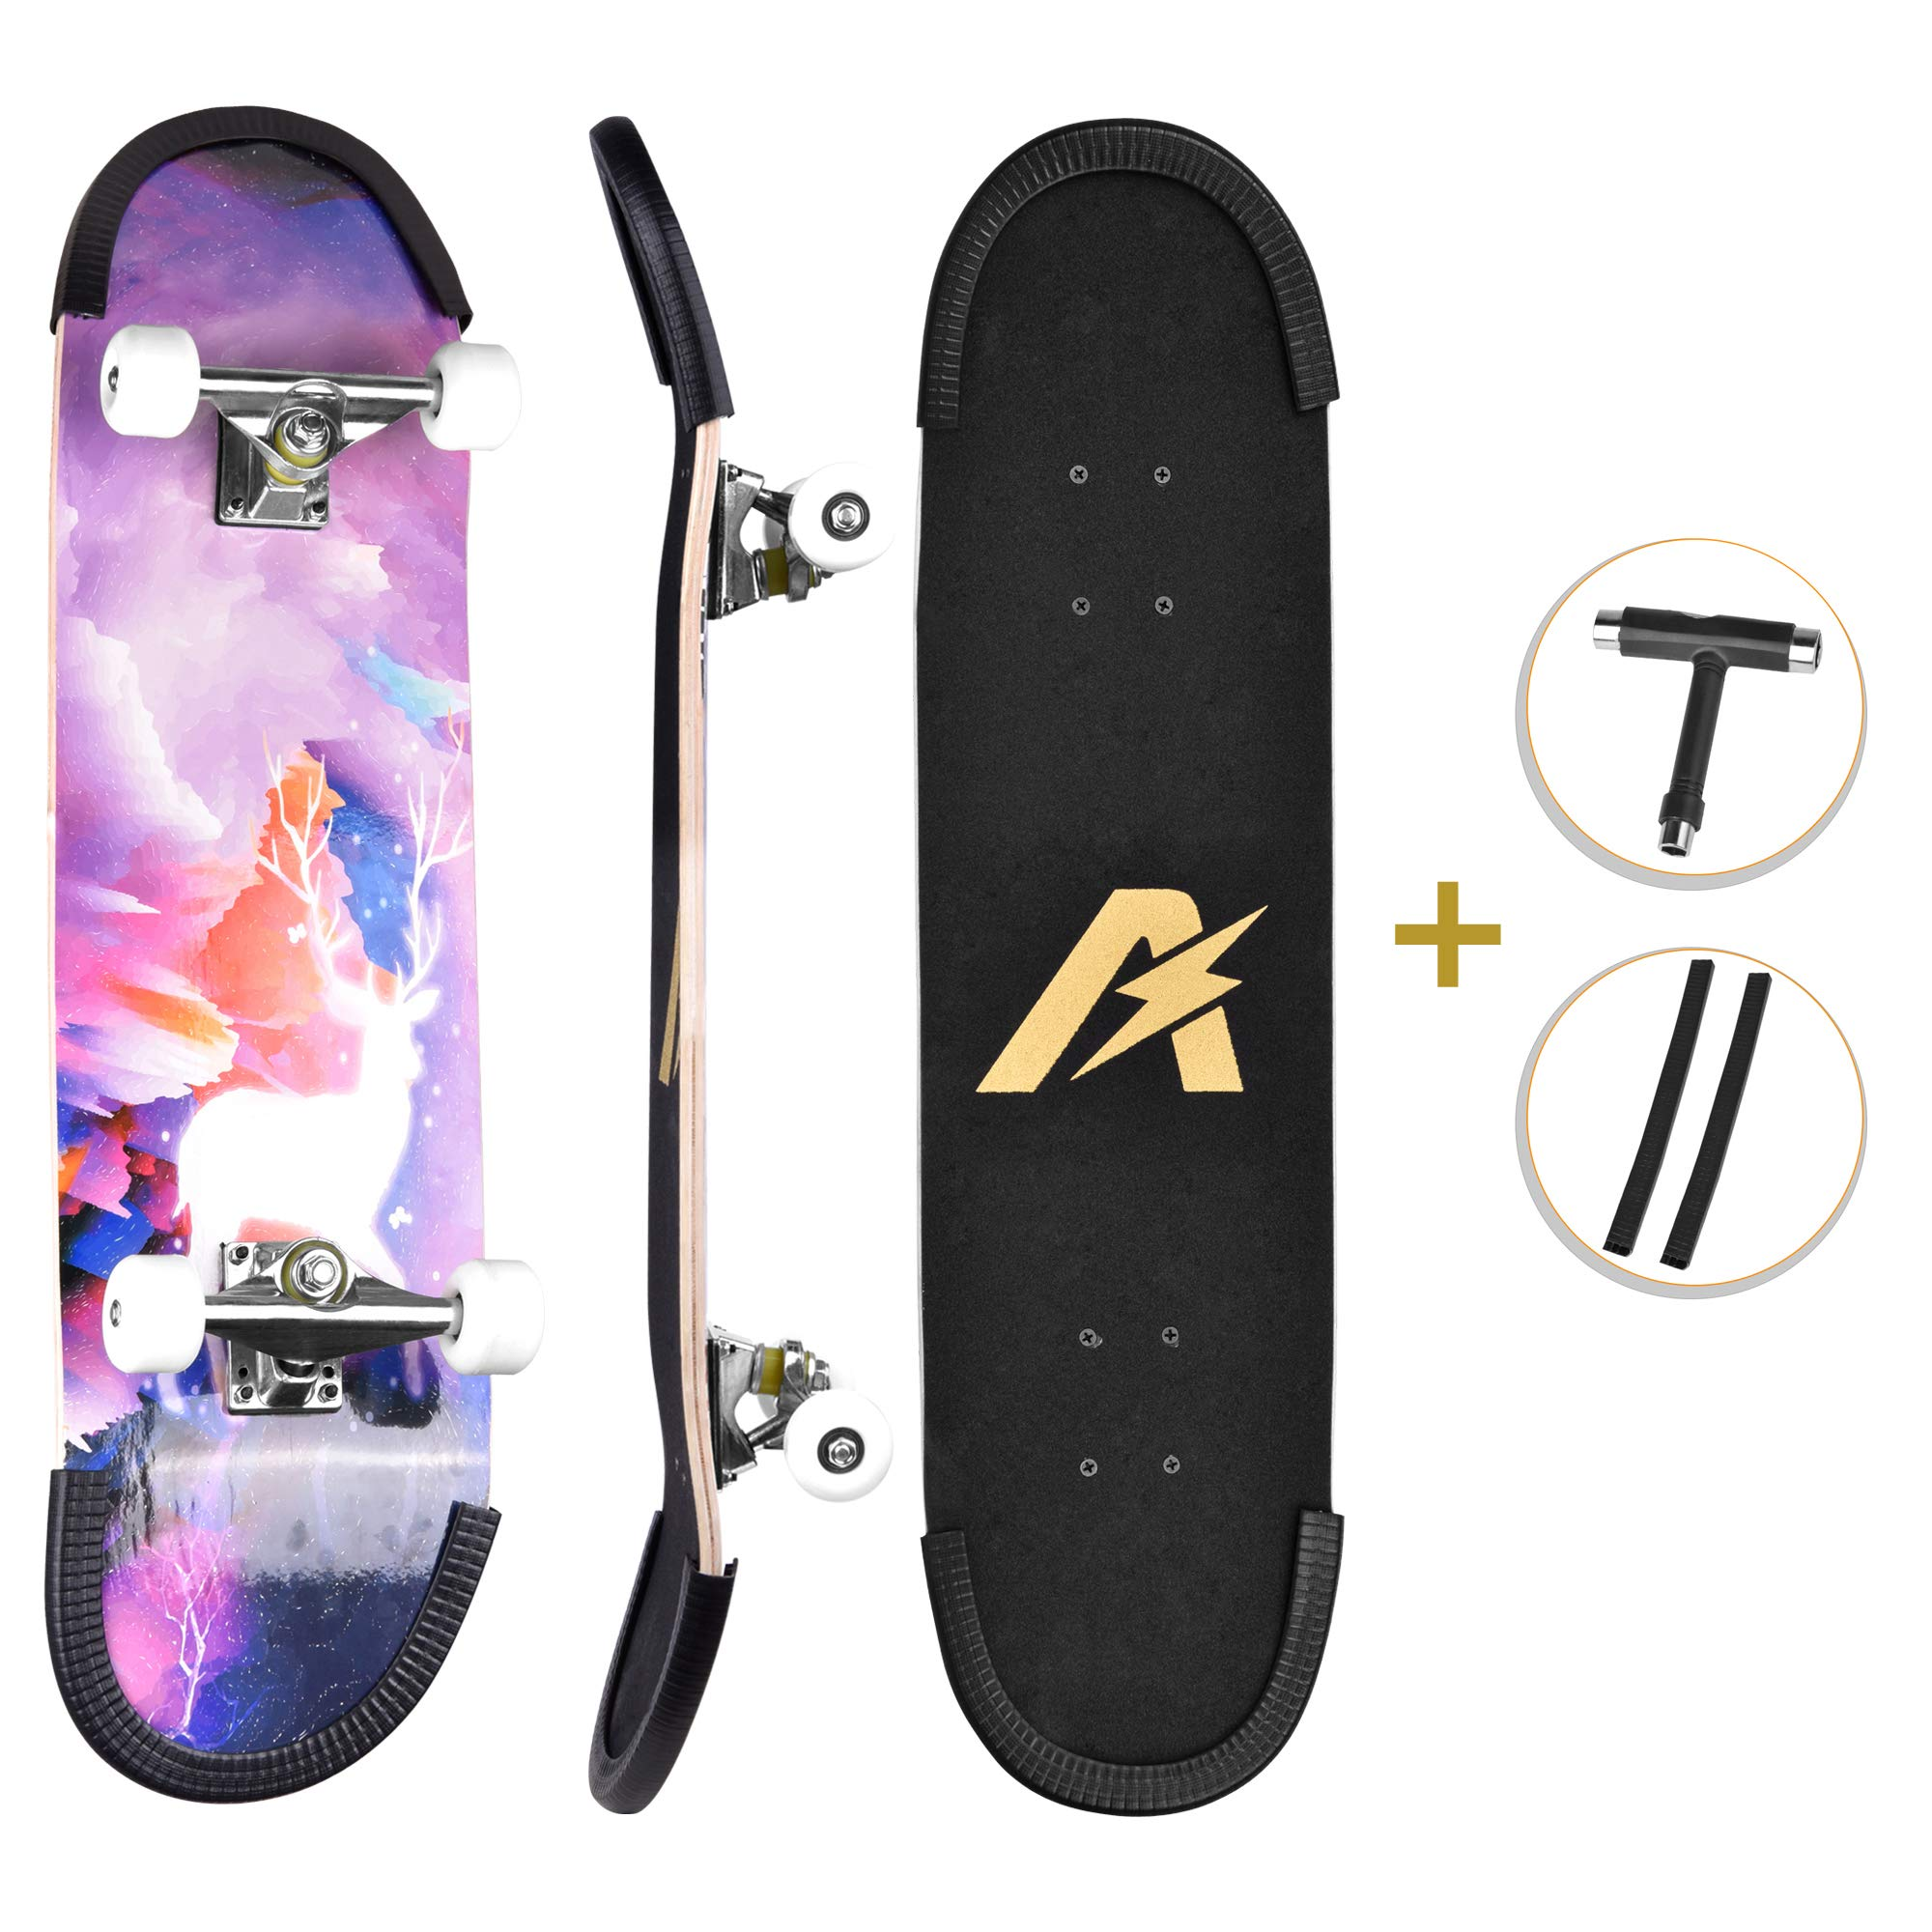 UsTinE Pro Skateboard 31'' X 8'' Standard Skateboards Cruiser Complete Maple 9 Layers Double Kick Concave Skate Boards